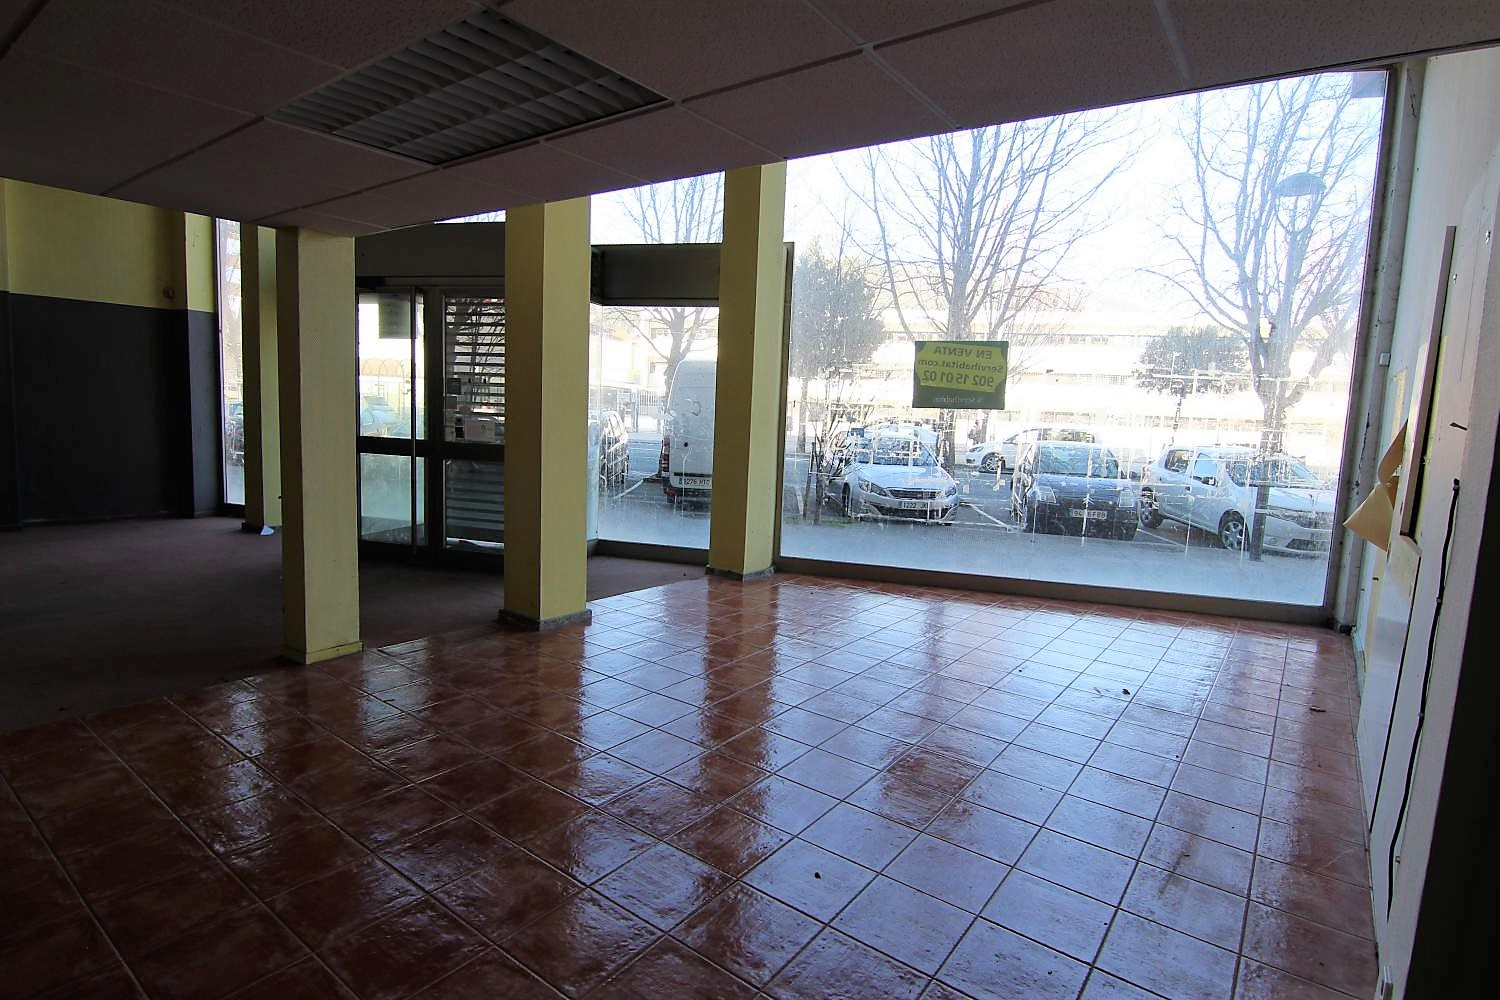 Venta de local comercial en Berriozar